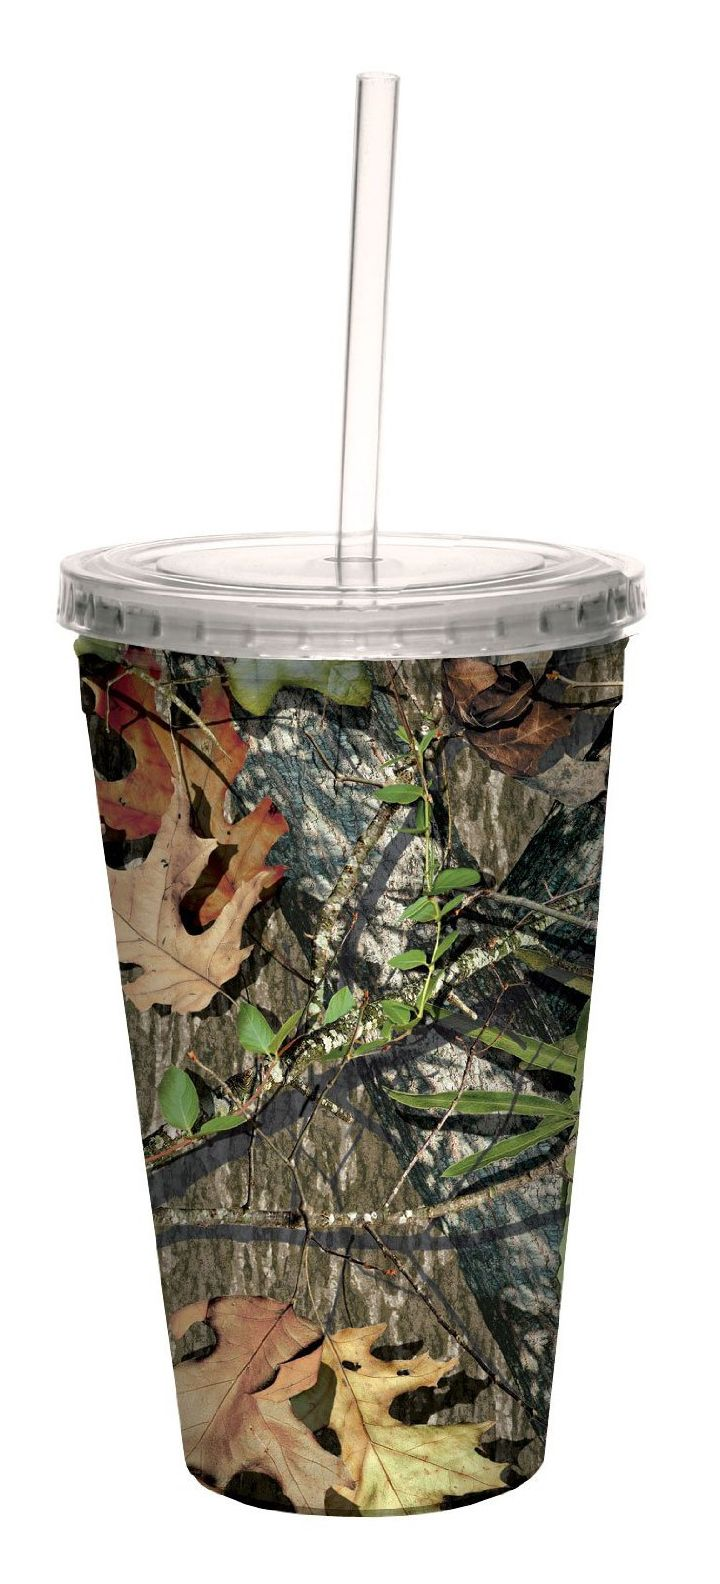 49 best camouflage gifts for him images on pinterest | mossy oak